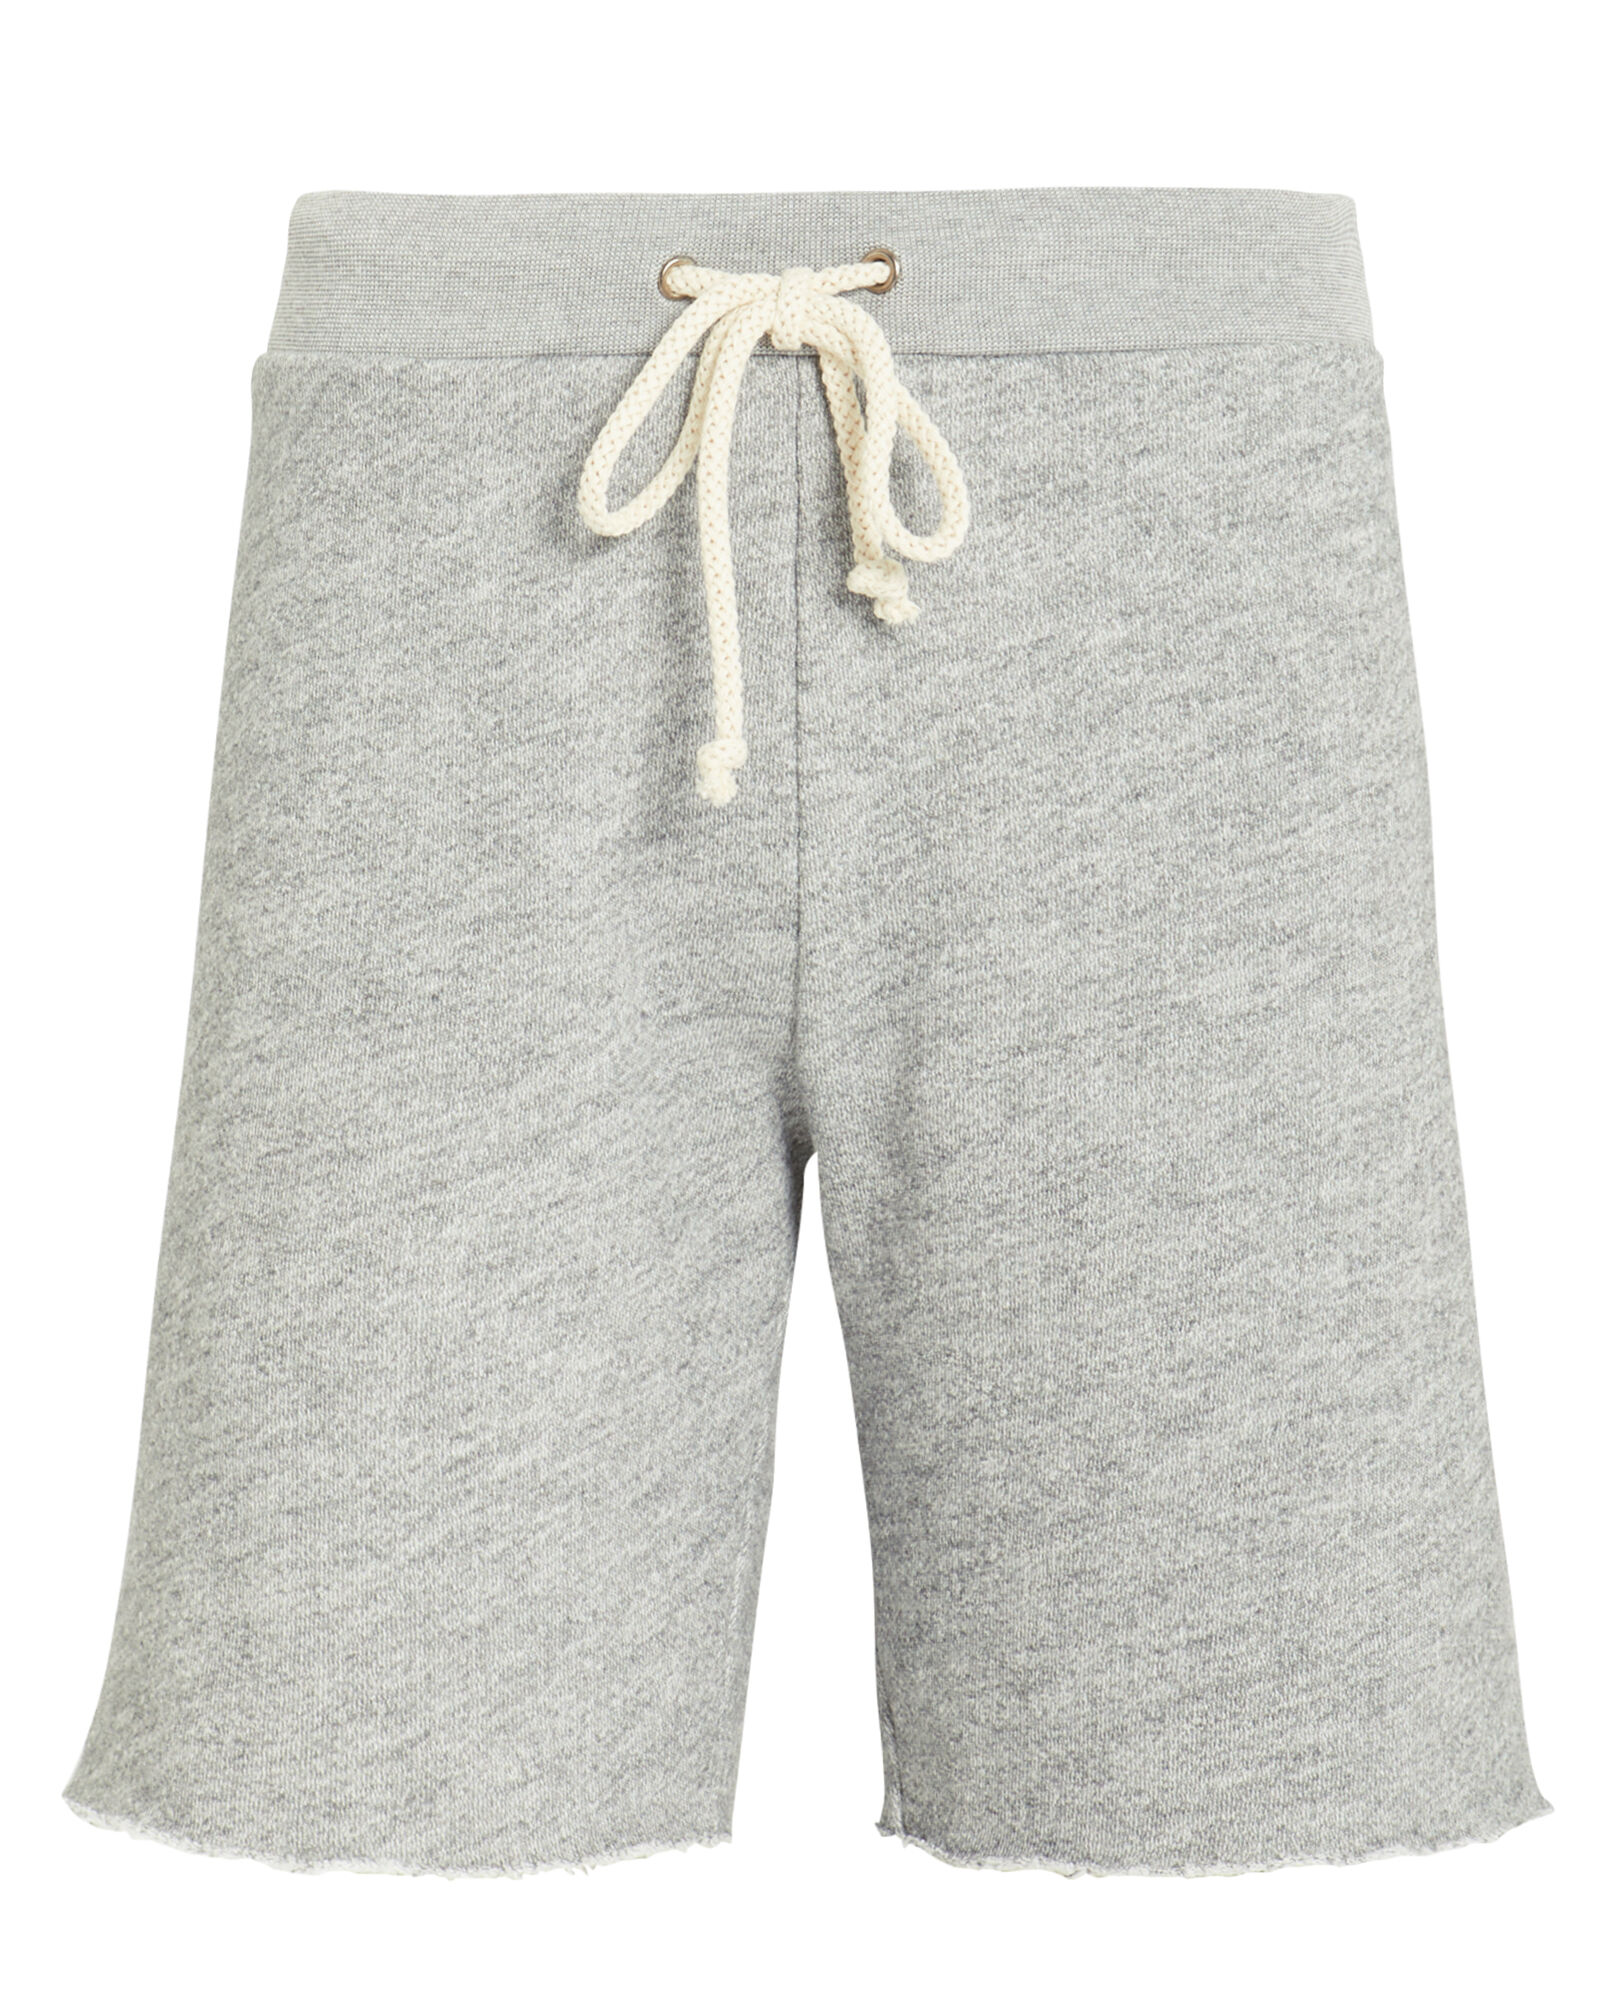 70s Terry Cotton Sweatshorts, HEATHER GREY, hi-res